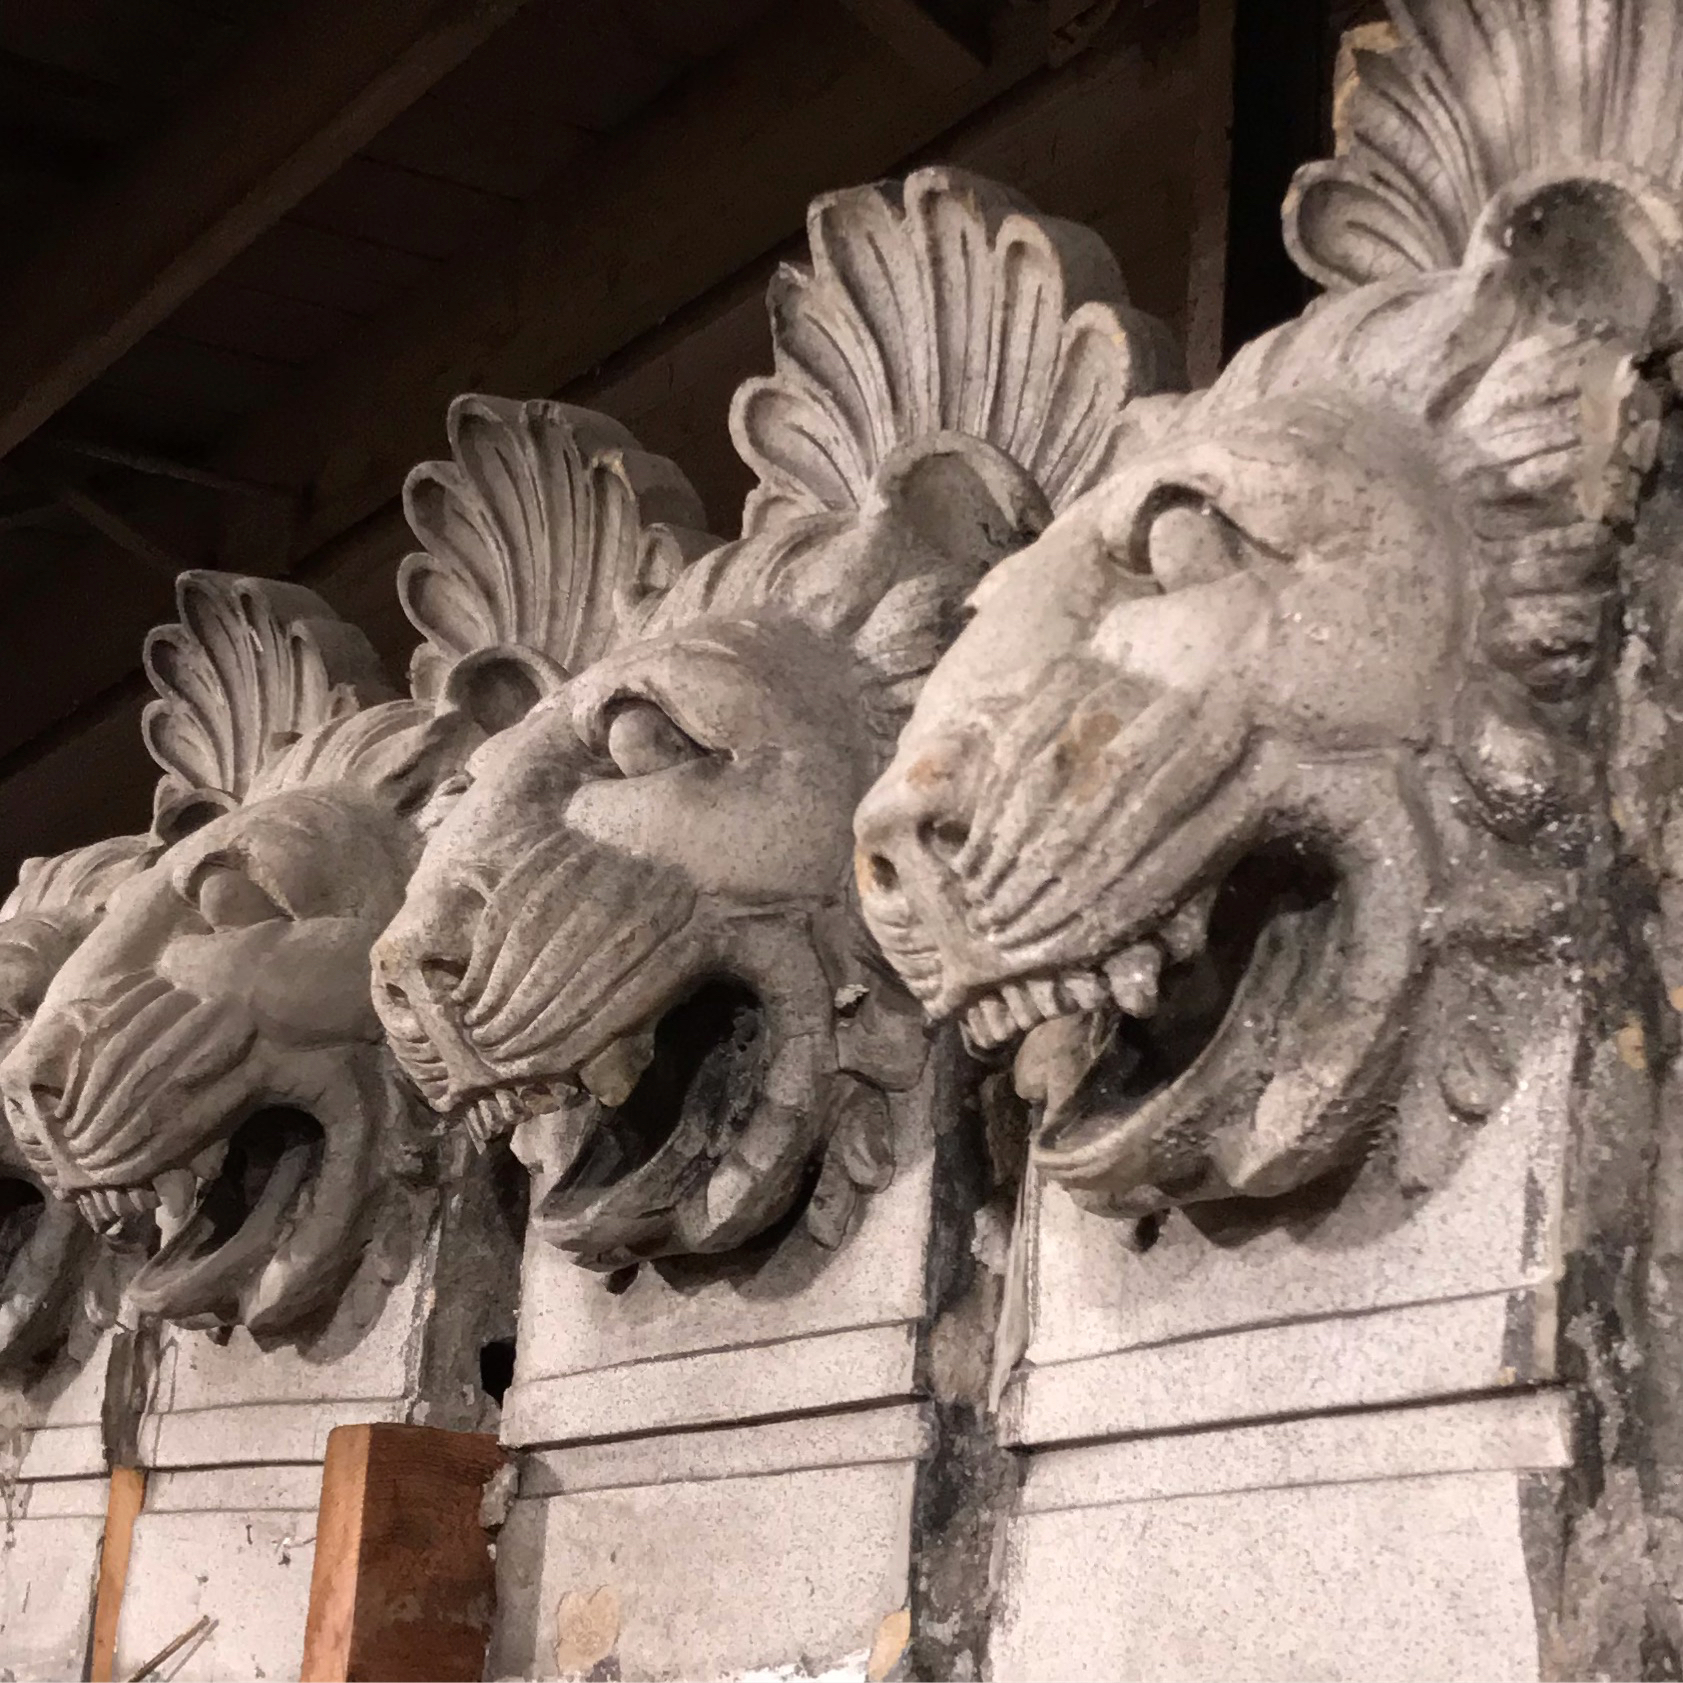 The lion heads with open m0uth's from the Marquette Annex Building in St. Louis MO.